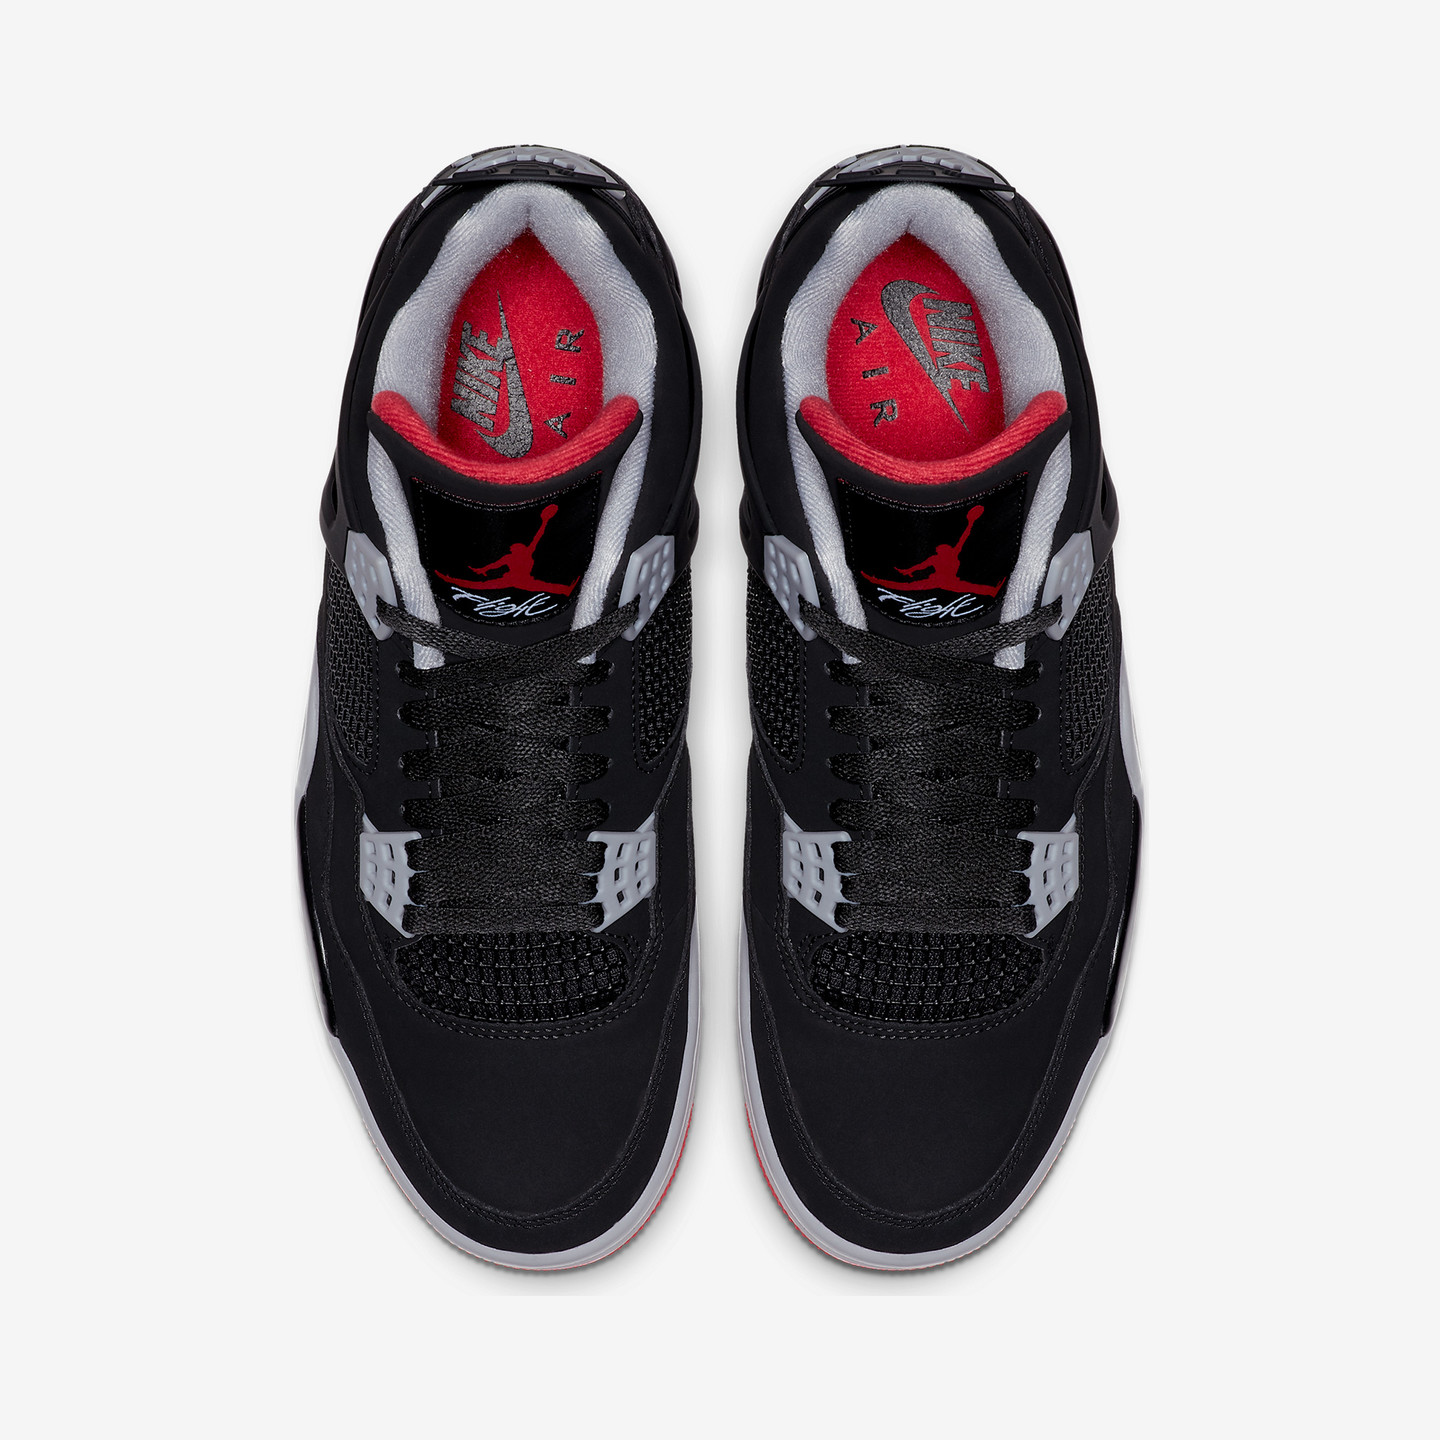 Jordan Air Jordan 4 Retro OG 'Bred' Black / Fire Red / Cement Grey / Summit White 308497-060